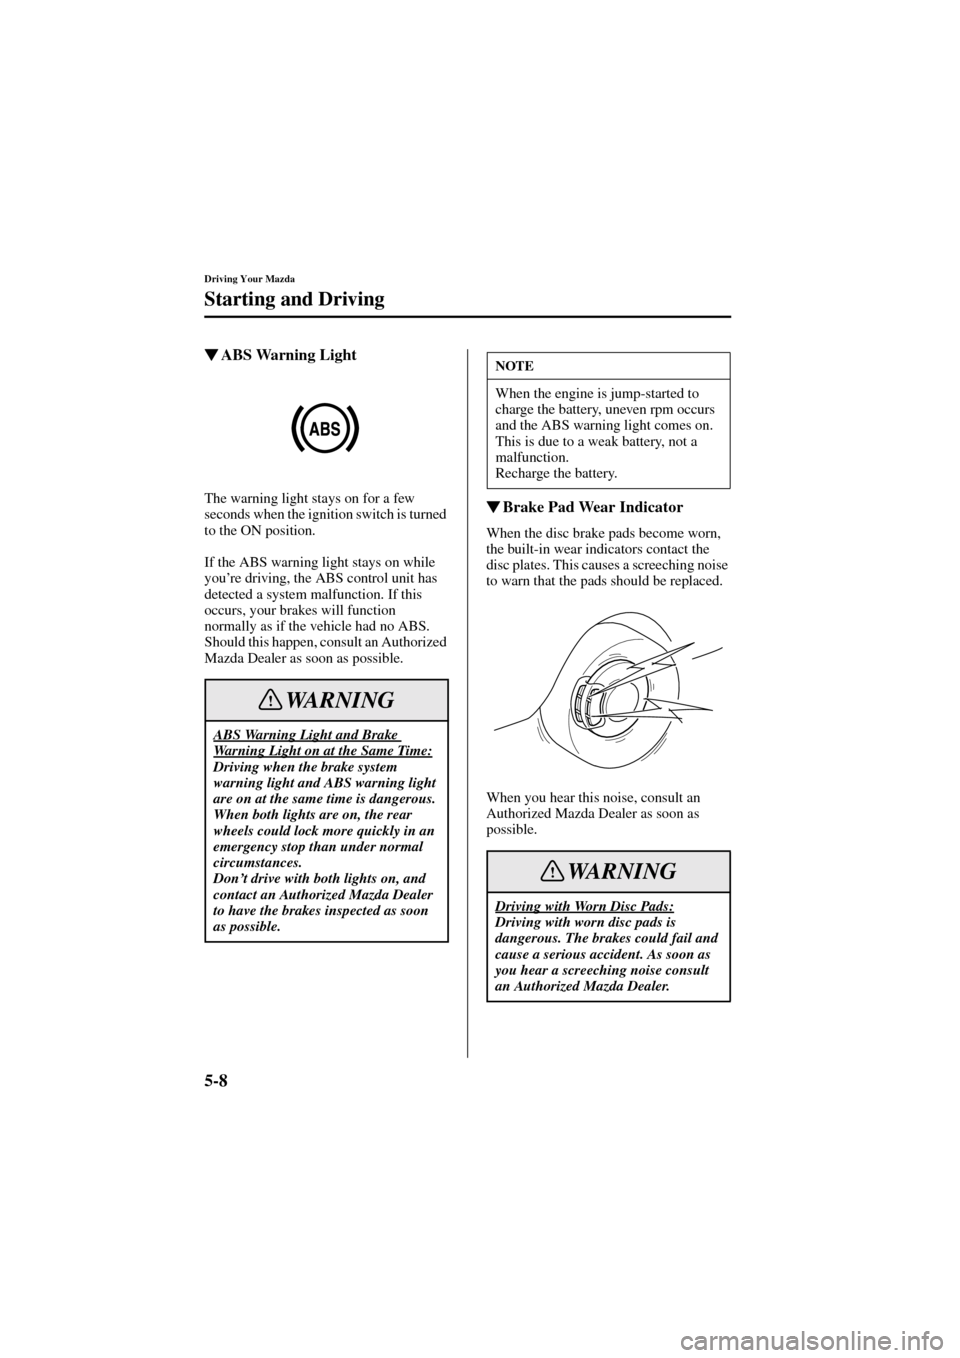 MAZDA MODEL 6 2004  Owners Manual (in English) 5-8 Driving Your Mazda Starting and Driving Form No. 8R29-EA-02I ABS Warning Light The warning light stays on for a few  seconds when the ignition switch is turned  to the ON position. If the ABS war